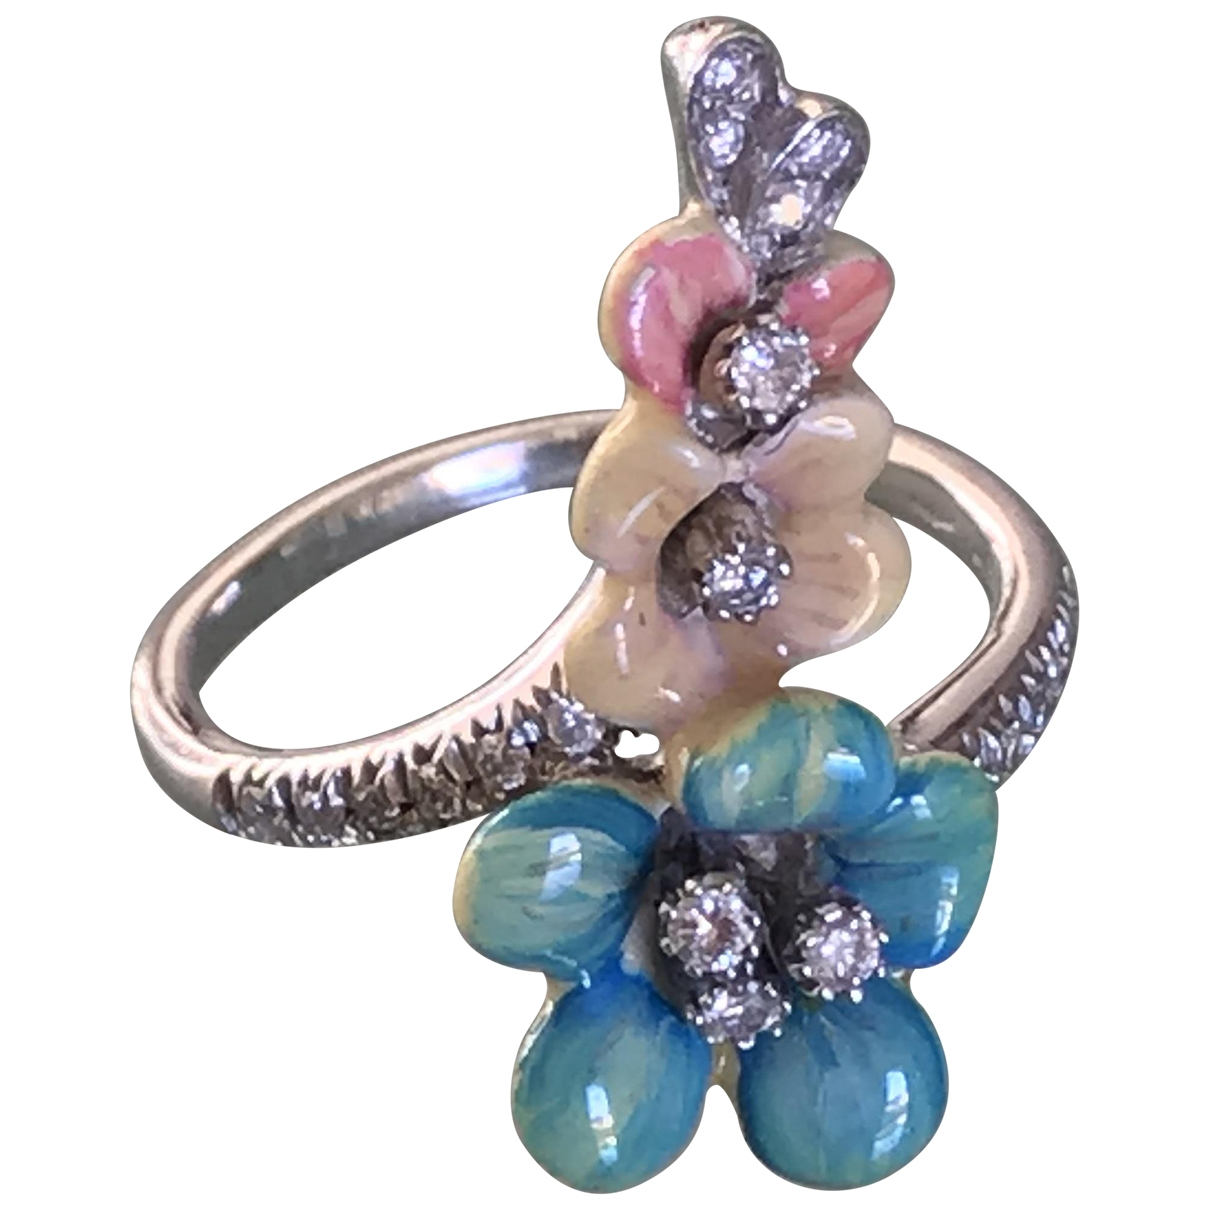 Non Signe / Unsigned Motifs Floraux Ring in Weissgold